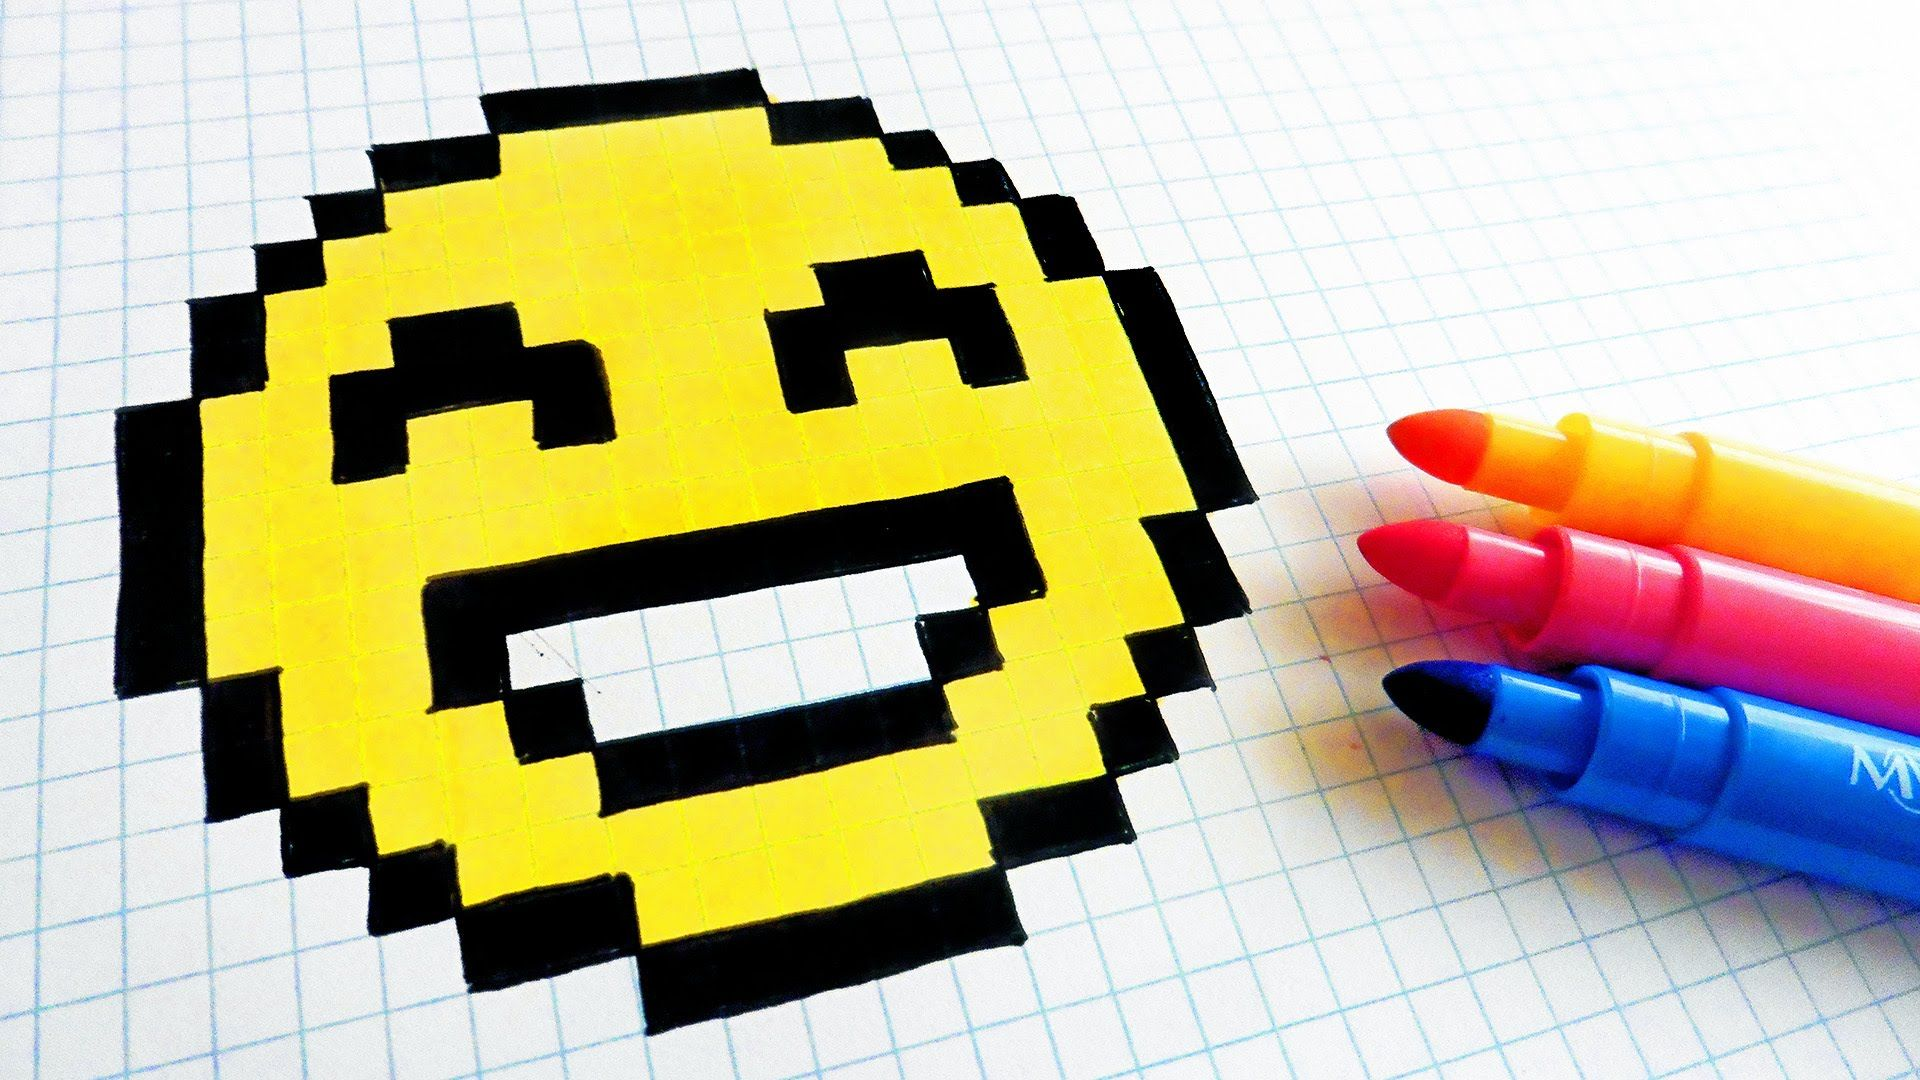 how to draw pixel art on paper